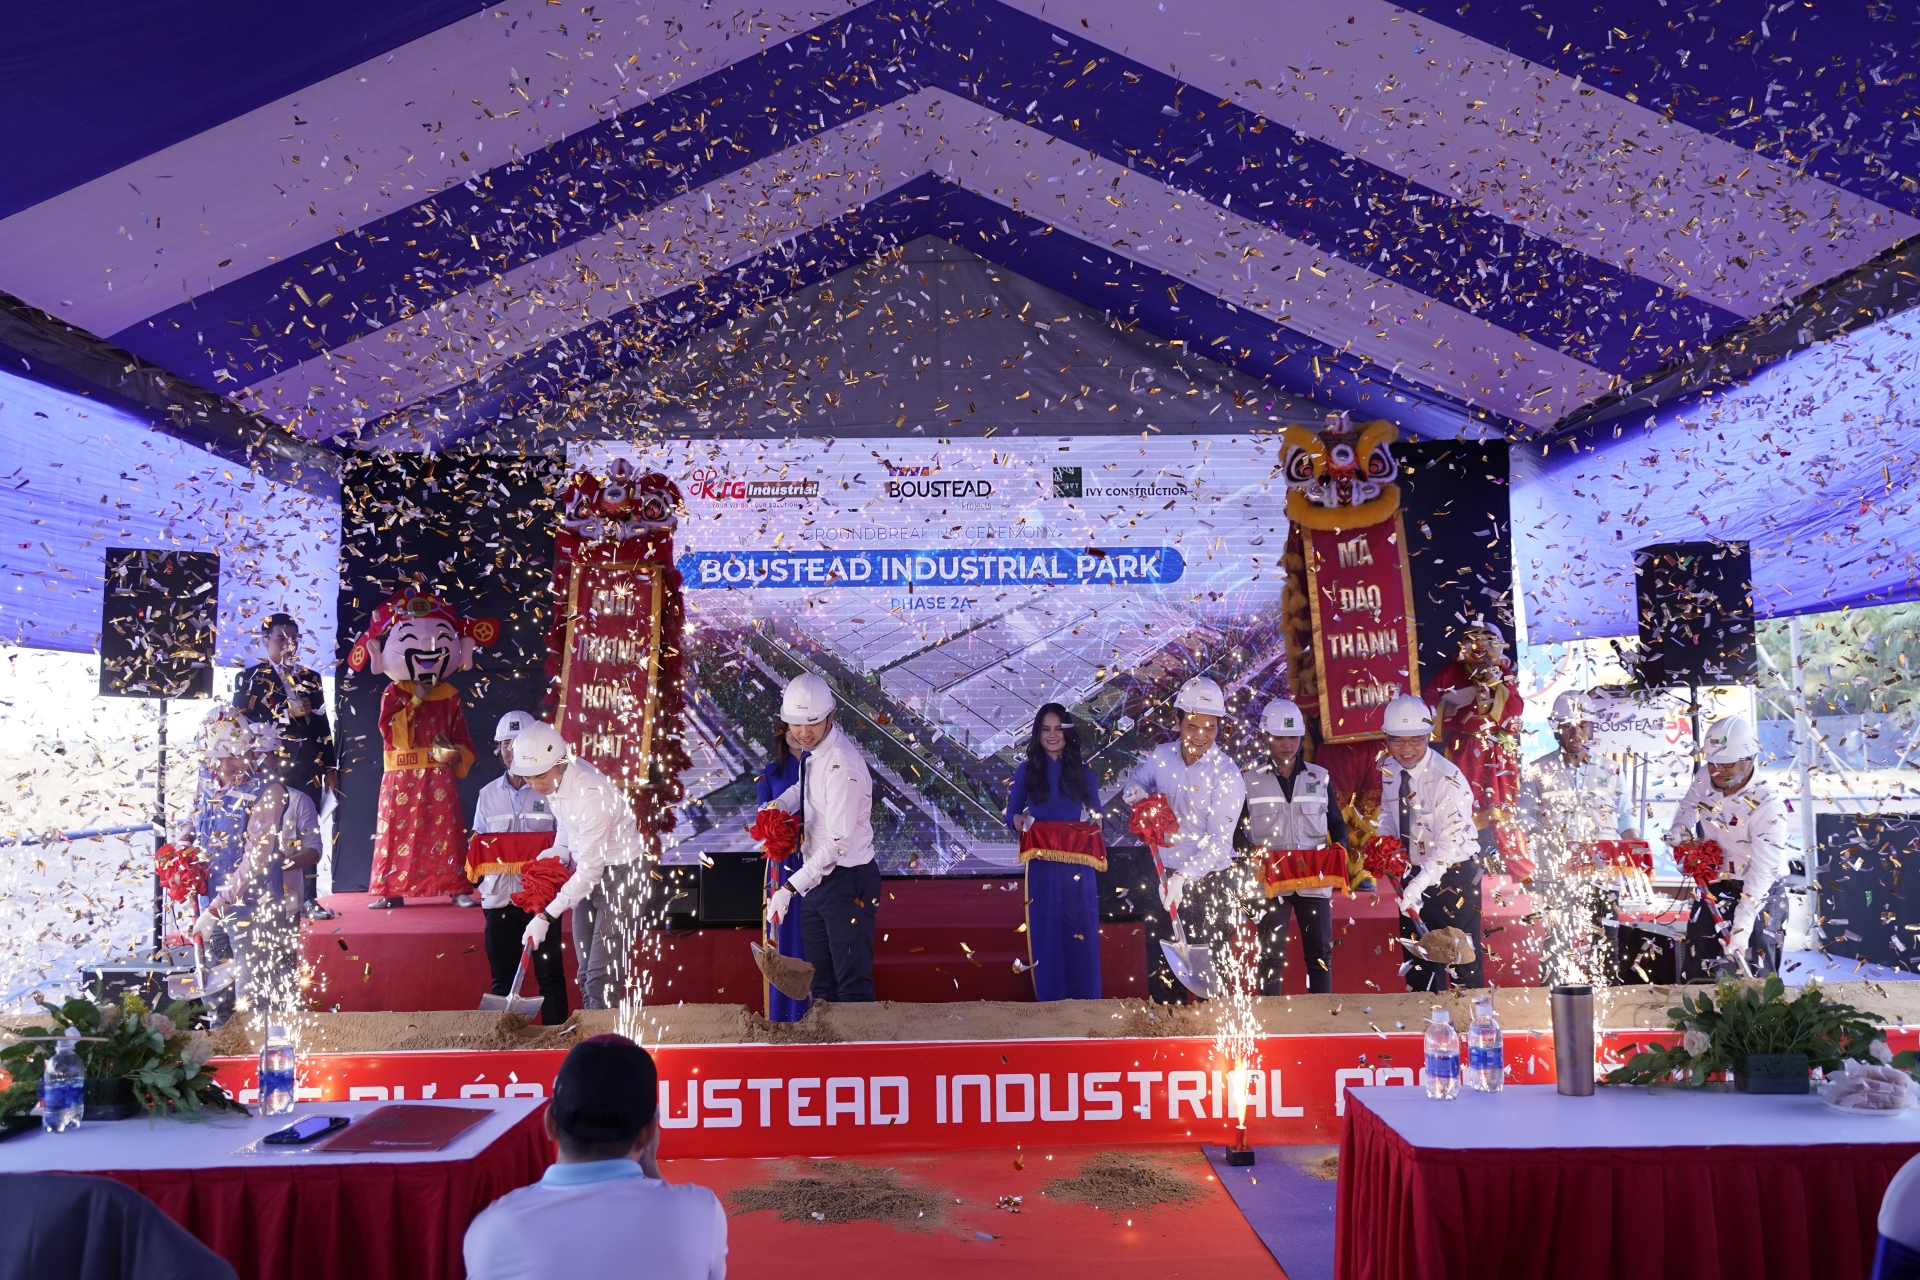 groundbreaking ceremony for boustead ip phase 2a managed by boustead ktg industrial